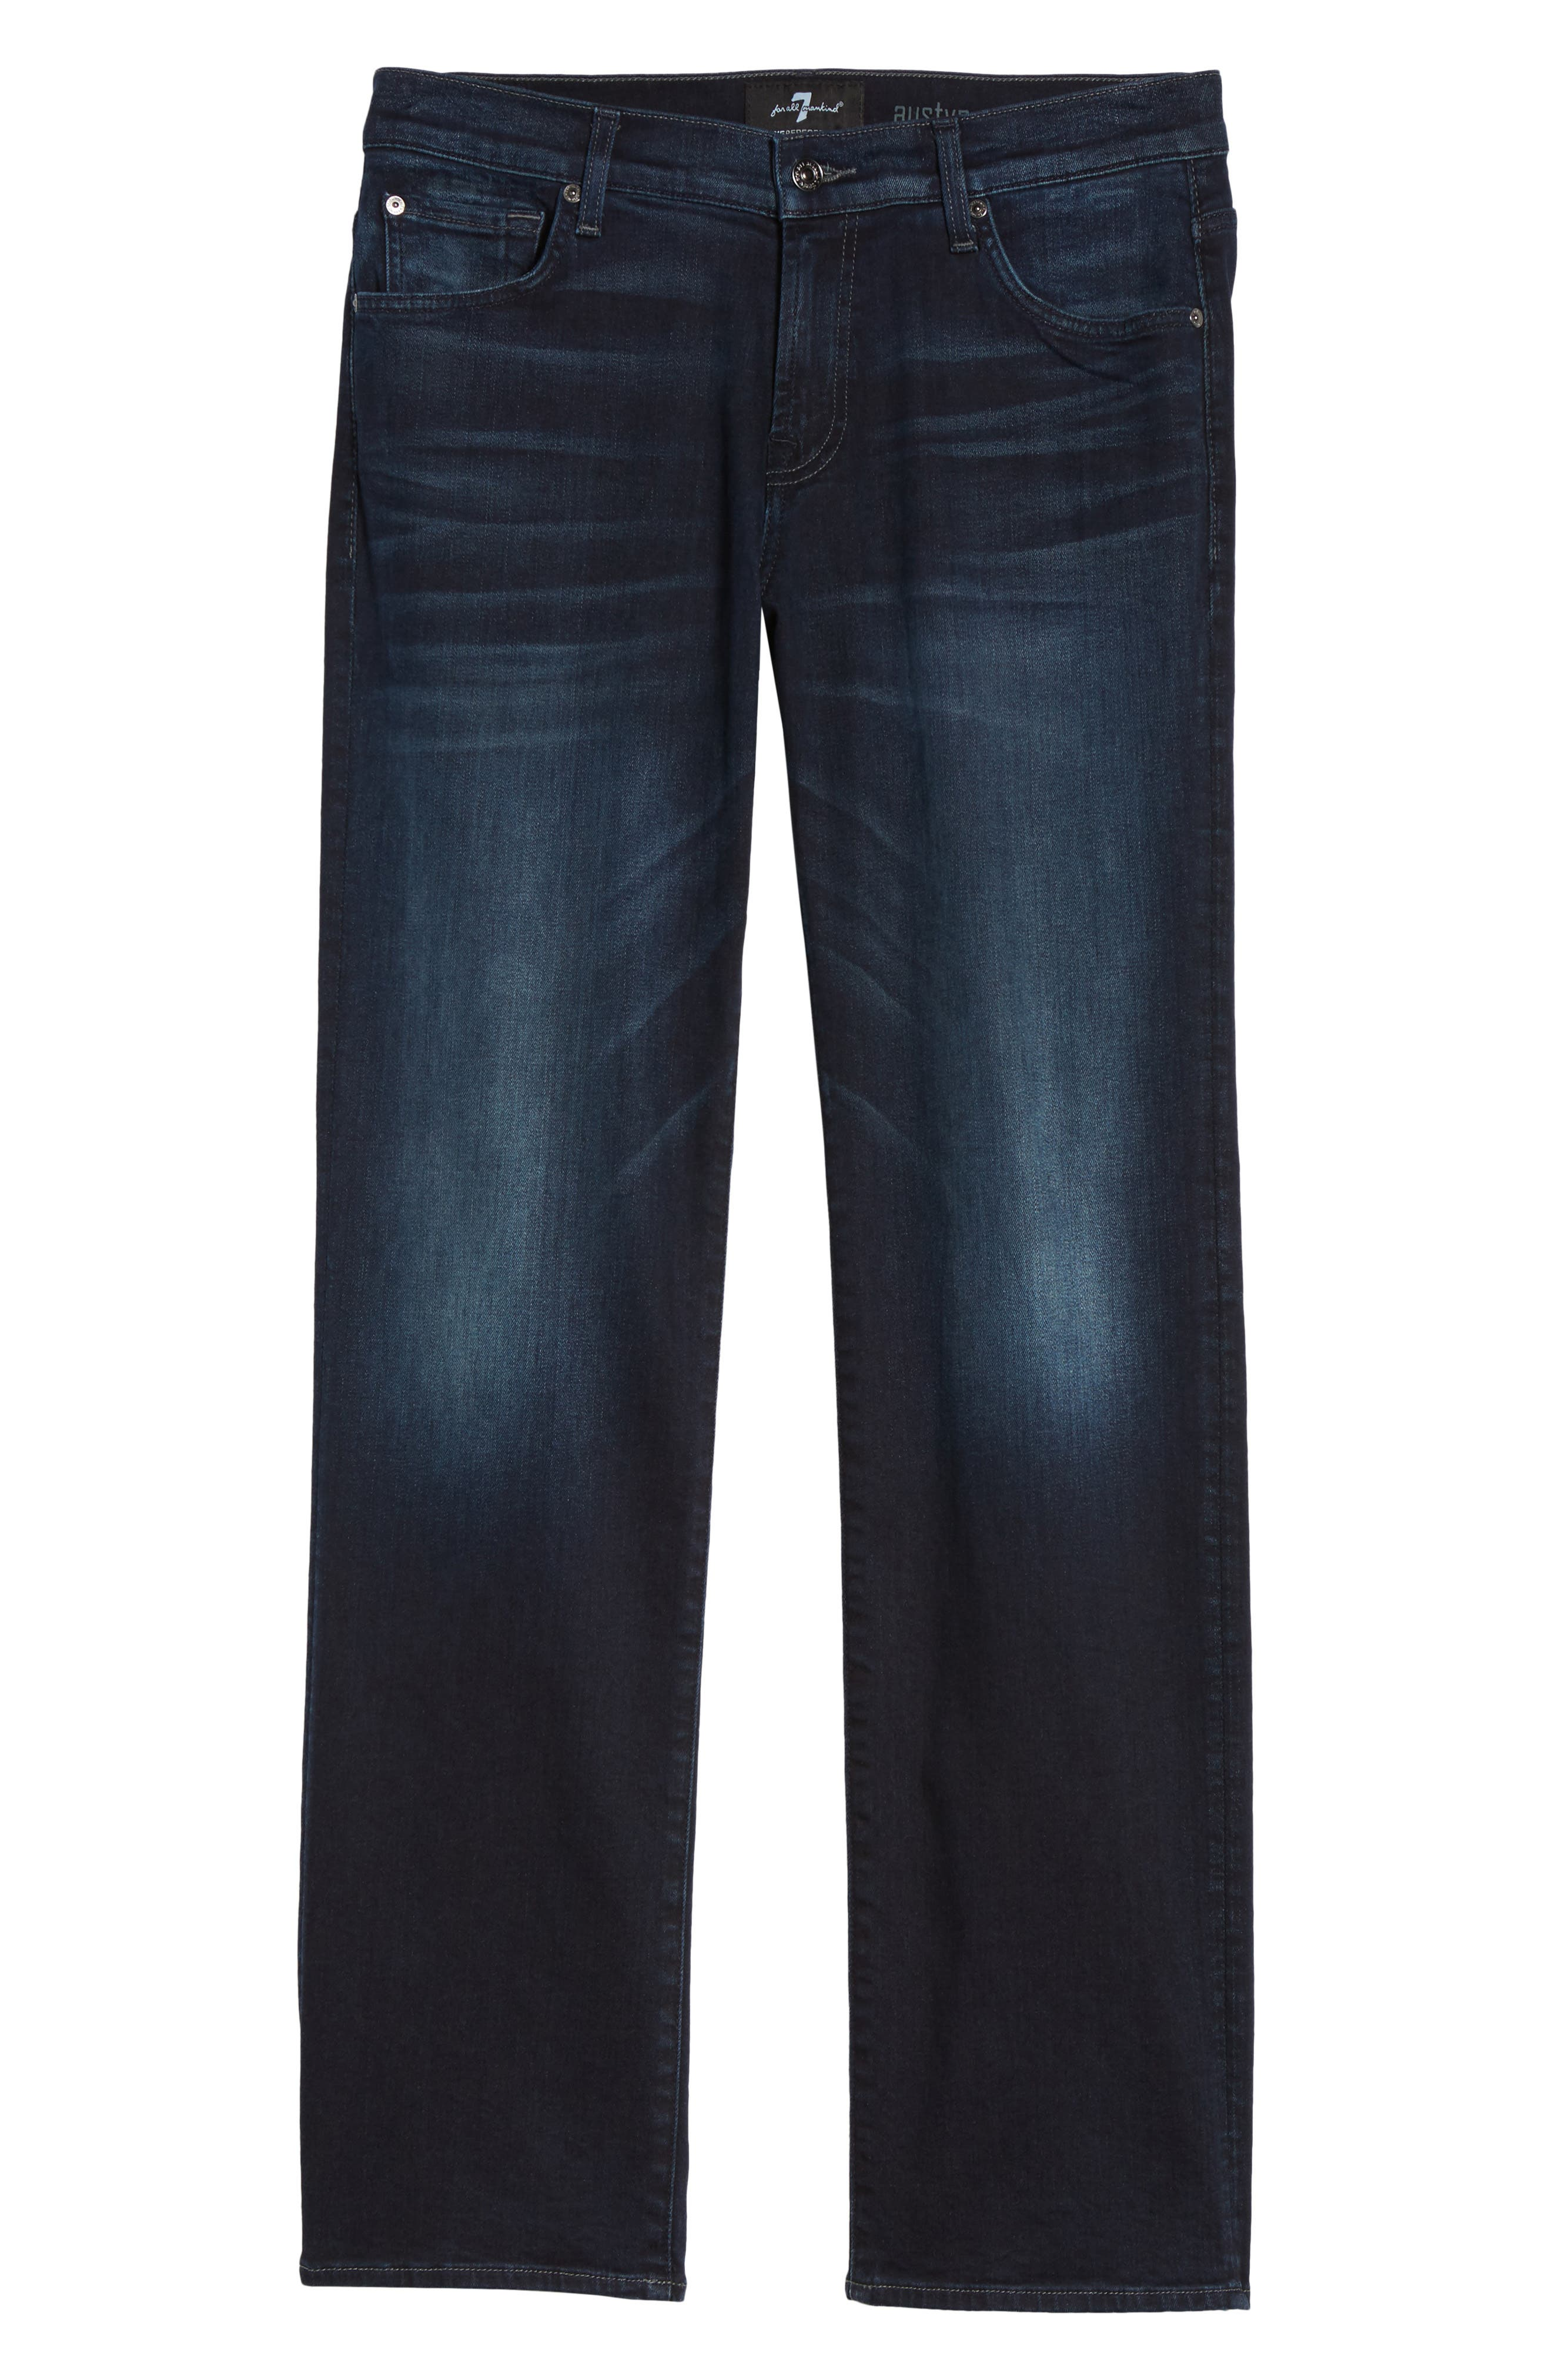 Austyn Relaxed Fit Jeans,                             Alternate thumbnail 6, color,                             400